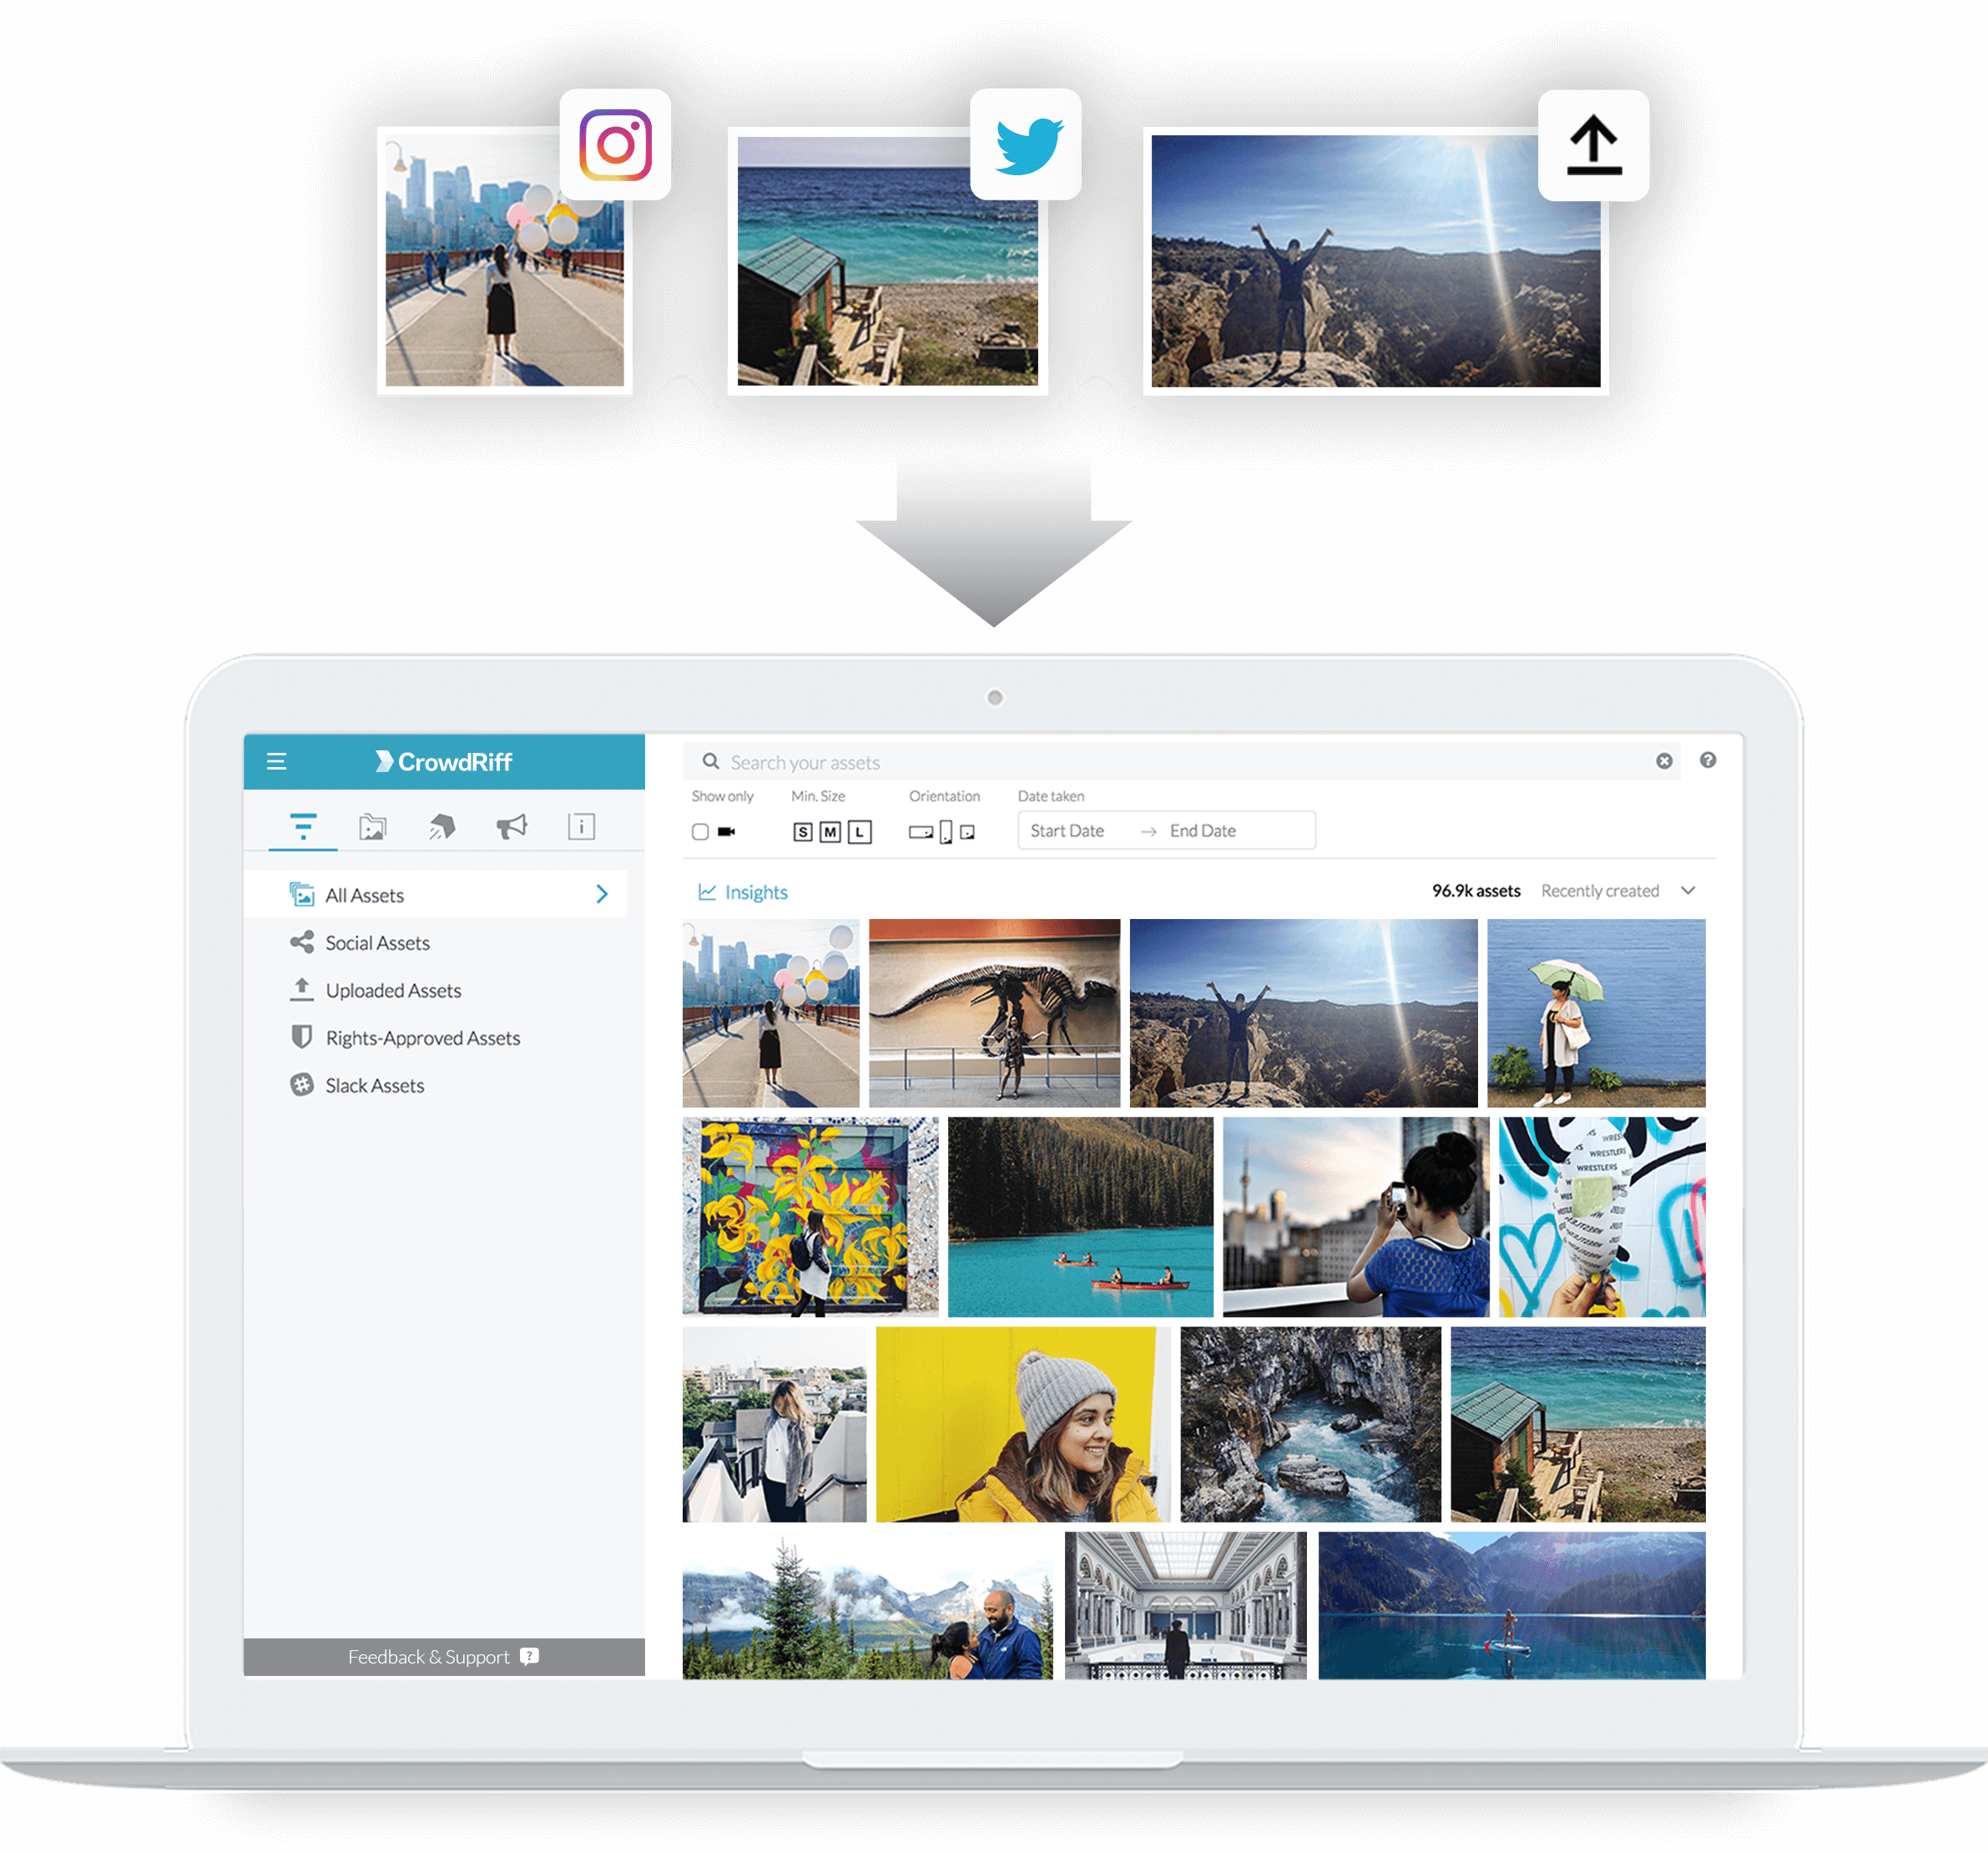 Screen showing CrowdRiff platform as a home for all your visuals